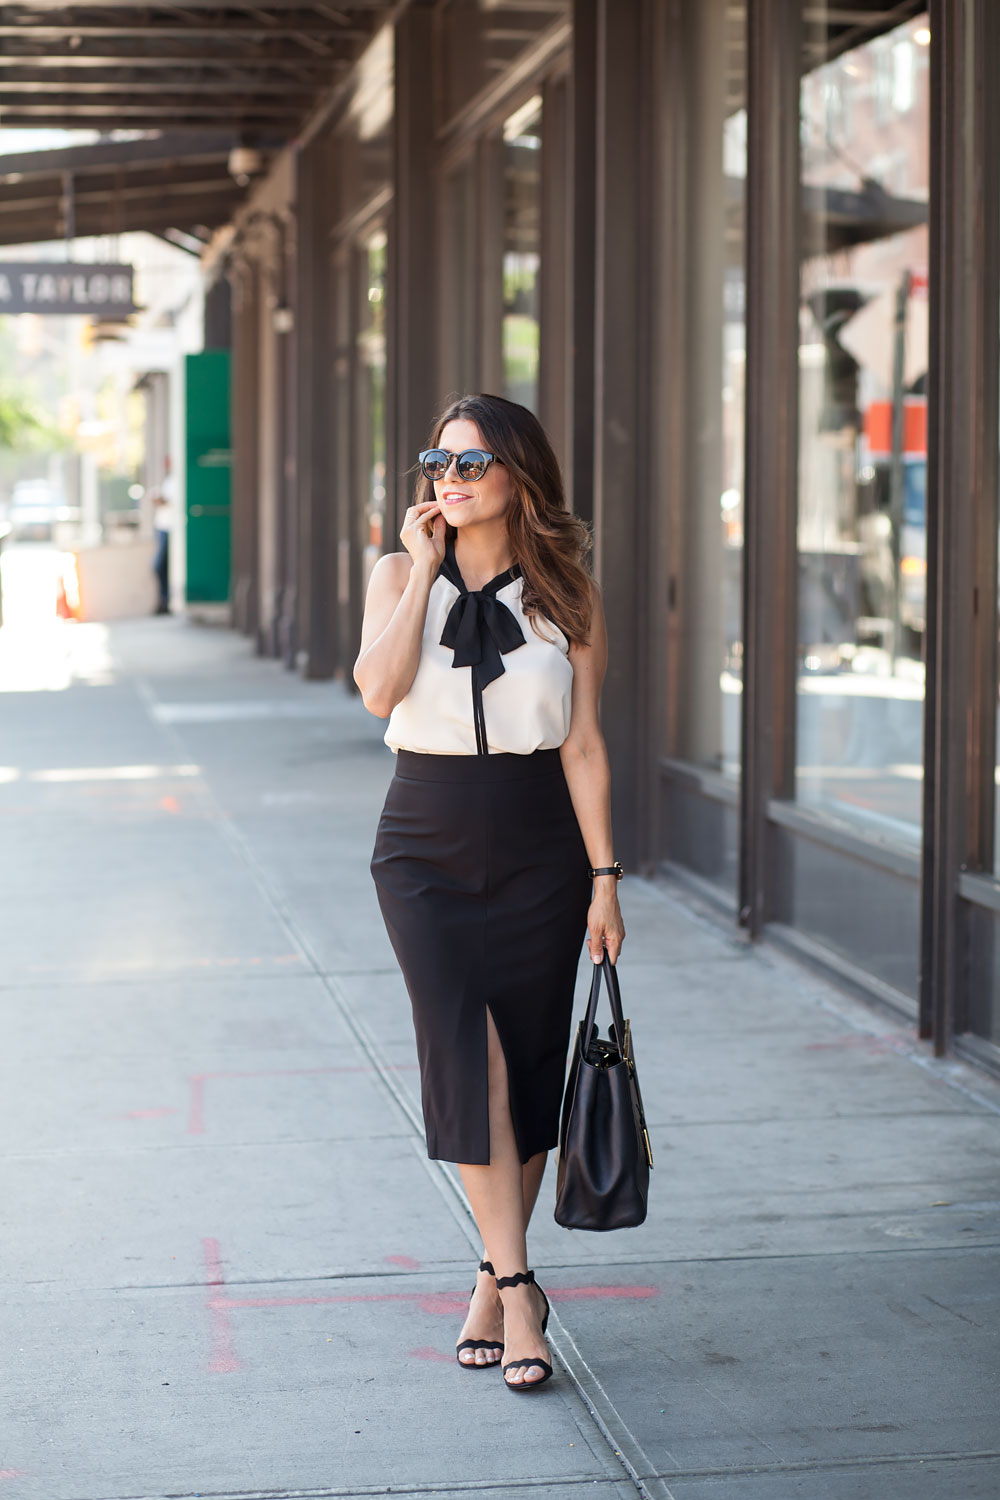 Black-pencil-skirt-neck-tie-bow-blouse-ModCloth-workwear-outfits-scalloped-black-heels-black-fendi-tote-what-to-wear-to-work-corporate-catwalk-nyc-new-york-fashion-blogger-copy1